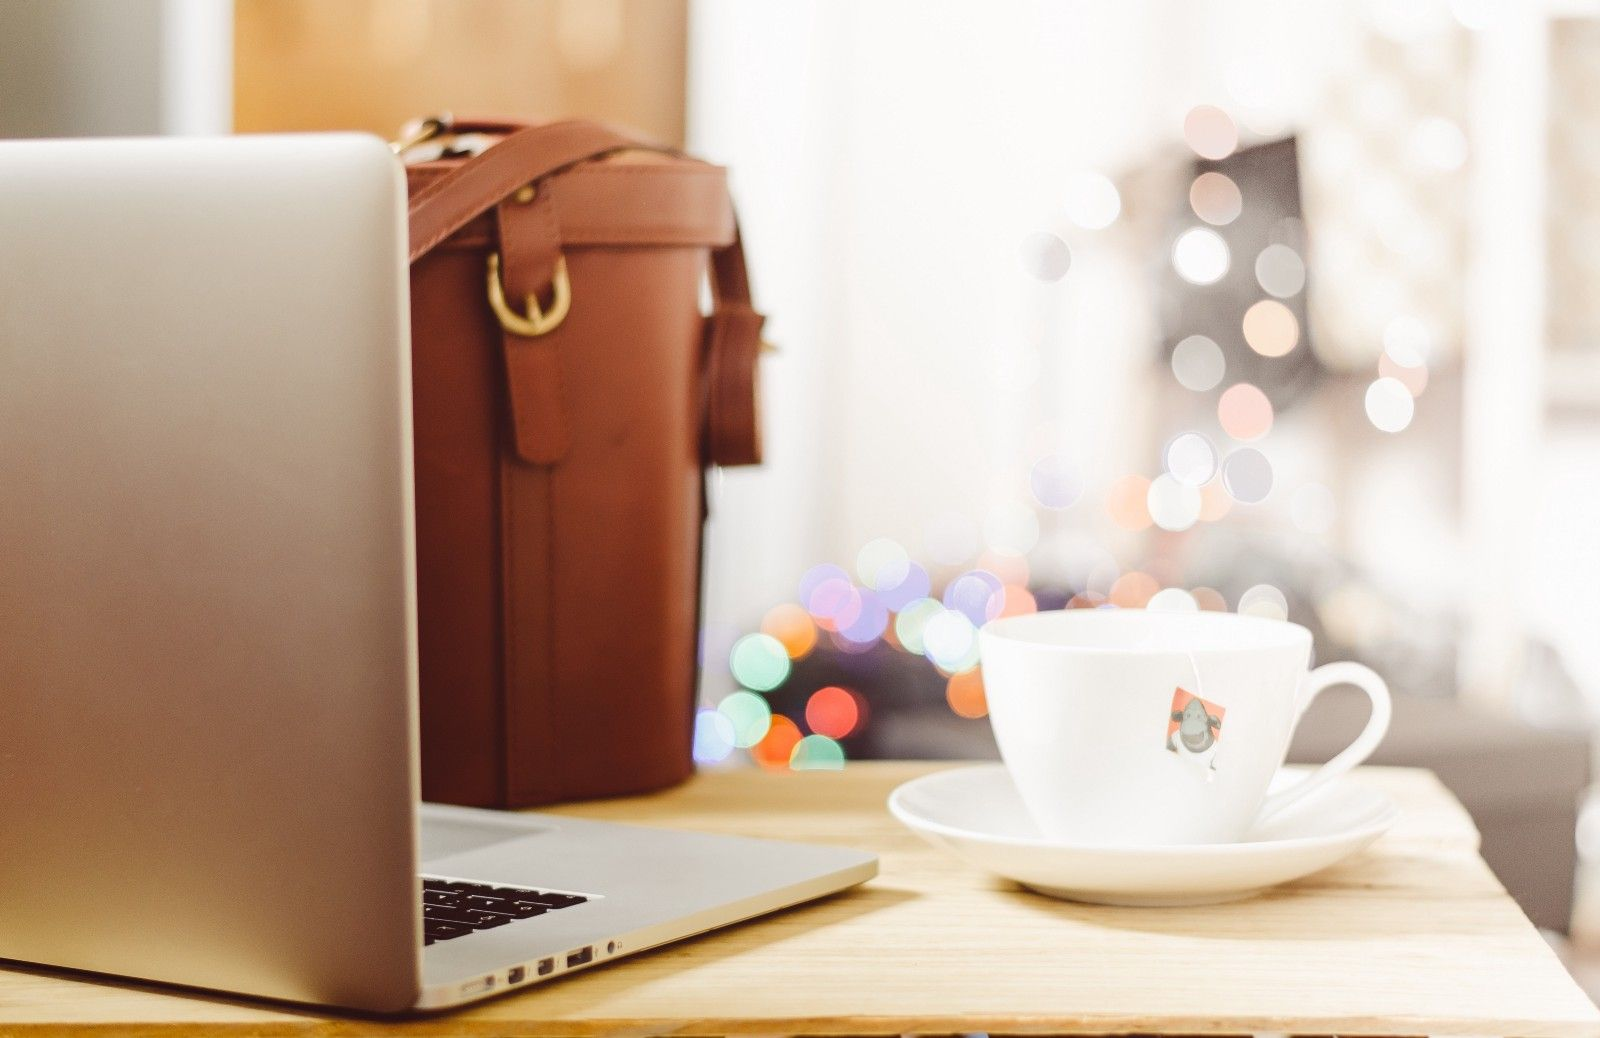 A laptop facing away from the foreground and cup of tea sitting side by side on a table with a workbag in the background.